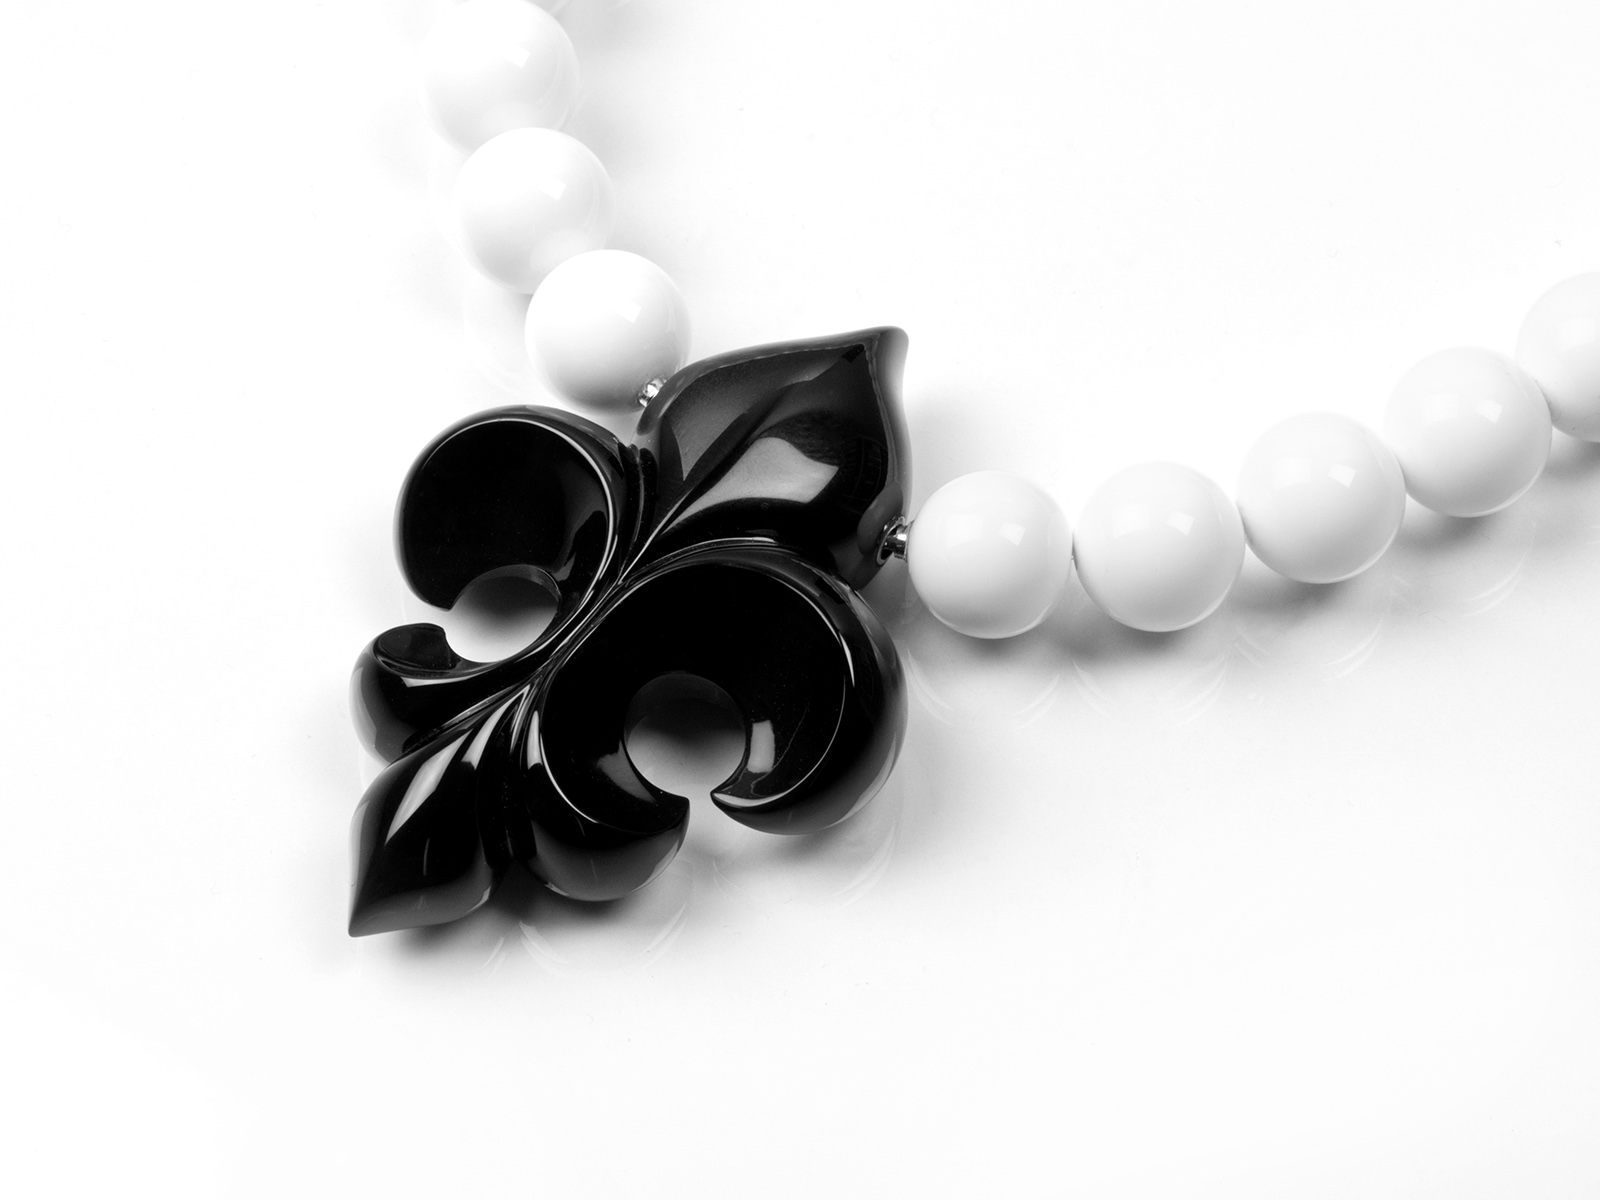 Onyx lily/interchangeable lock systems with White Agate necklace.